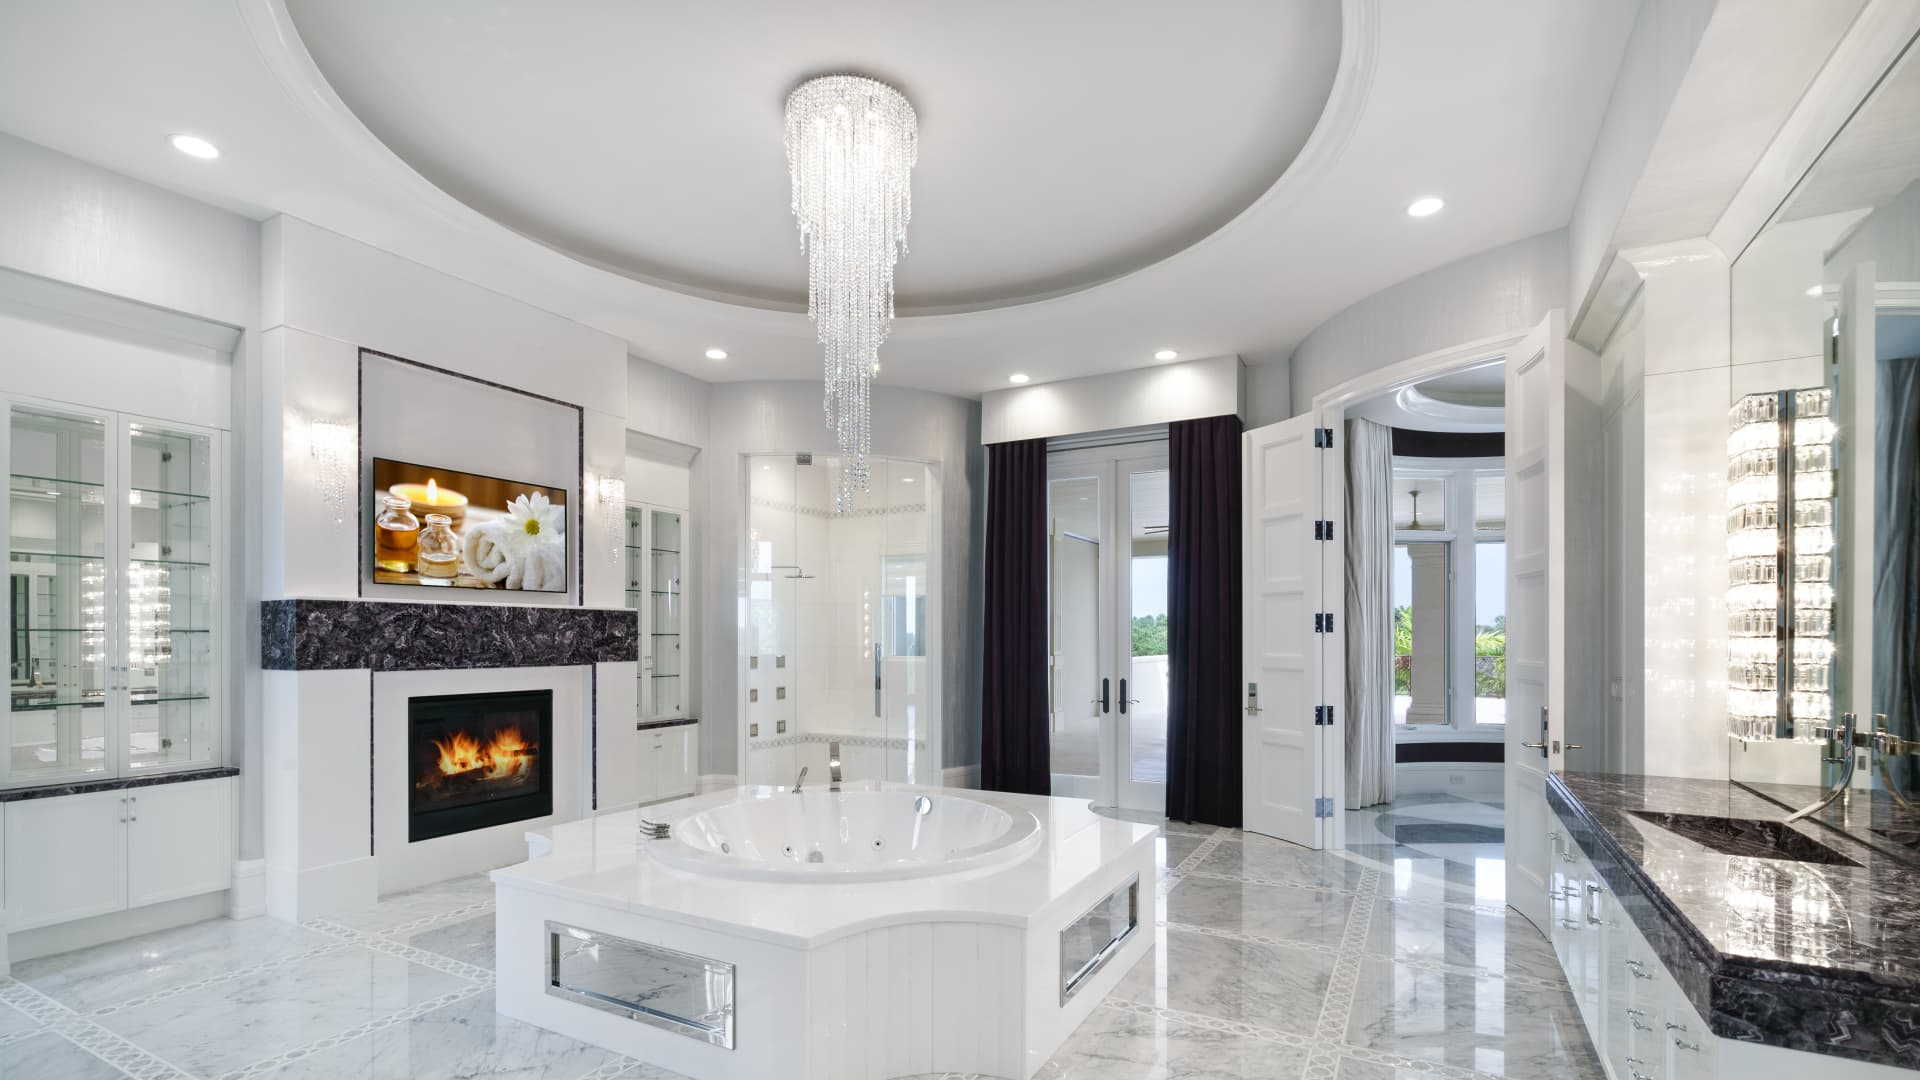 Her bath with fireplace, hot tub and Amethyst accents.